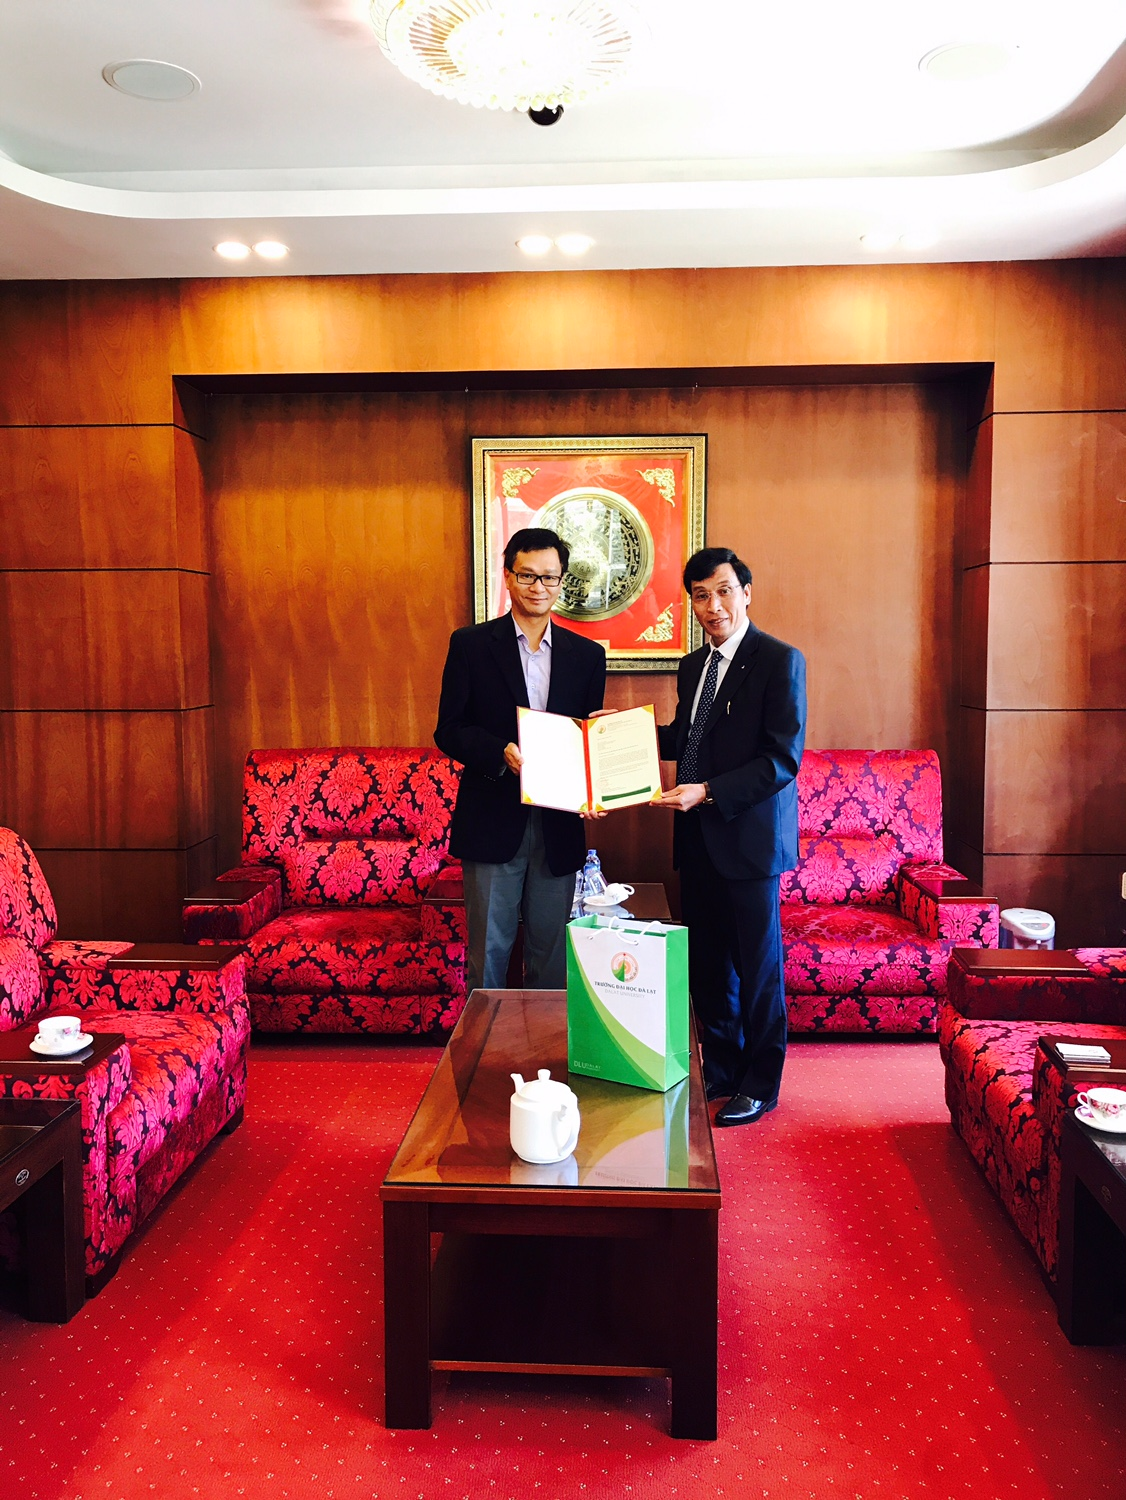 Dr. Le (left) and Dalat Universty President, Dr. Nguyen Duc Hoa during his Fulbright Specialist grant